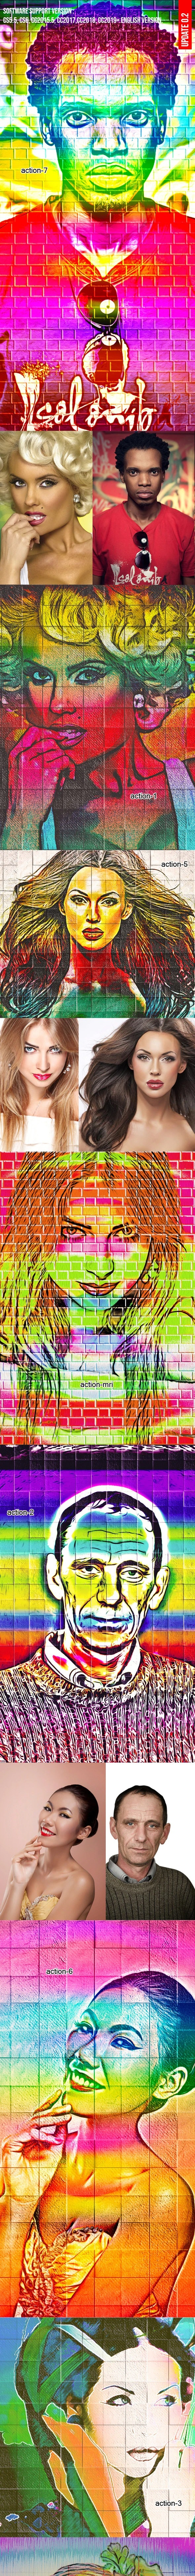 Graffiti Art Photo Action - Photo Effects Actions